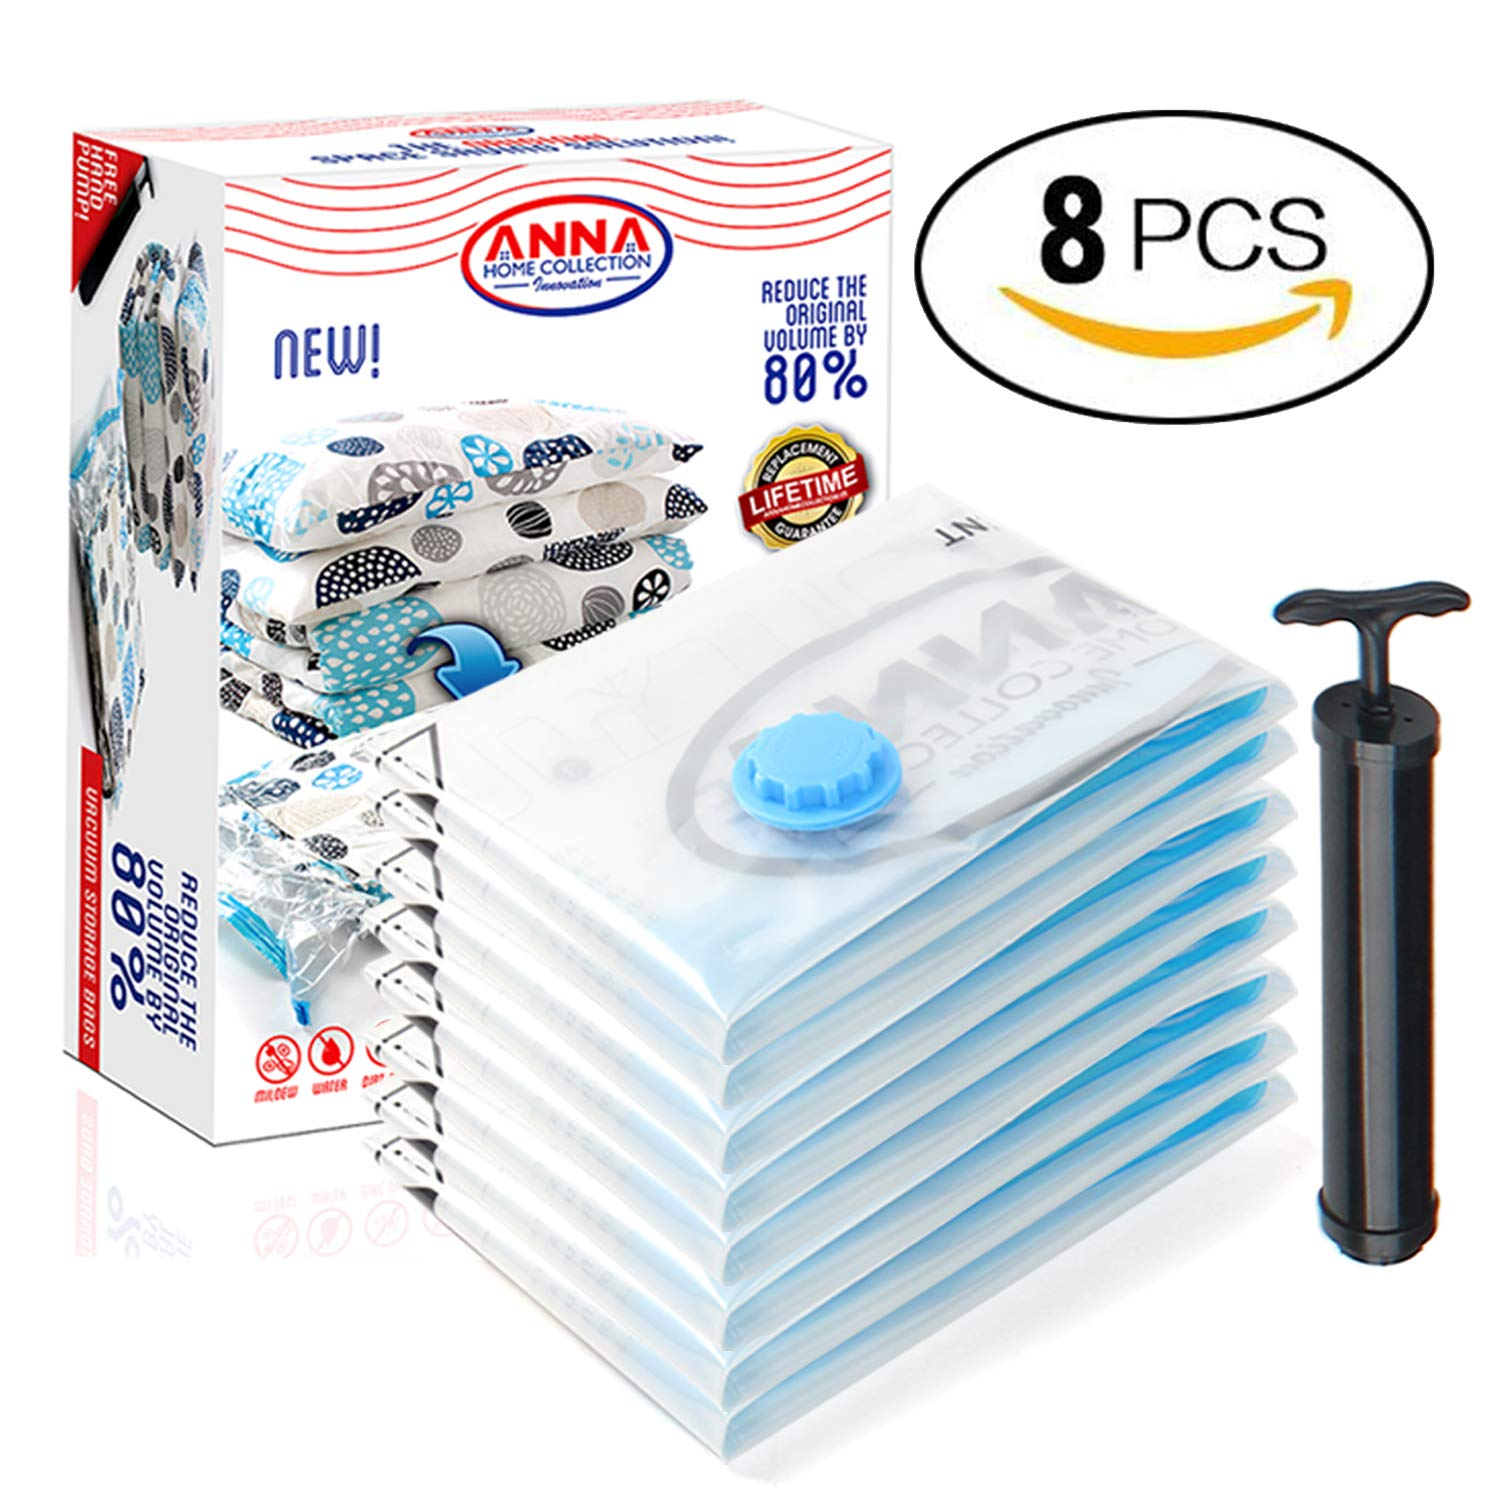 Anna Home Premium Vacuum Storage Bags 8 Pack ( 4 x Large, 4 x Medium) Space Saver Storage Bags for Travel. Durable and Reusable, Travel Hand Pump Included